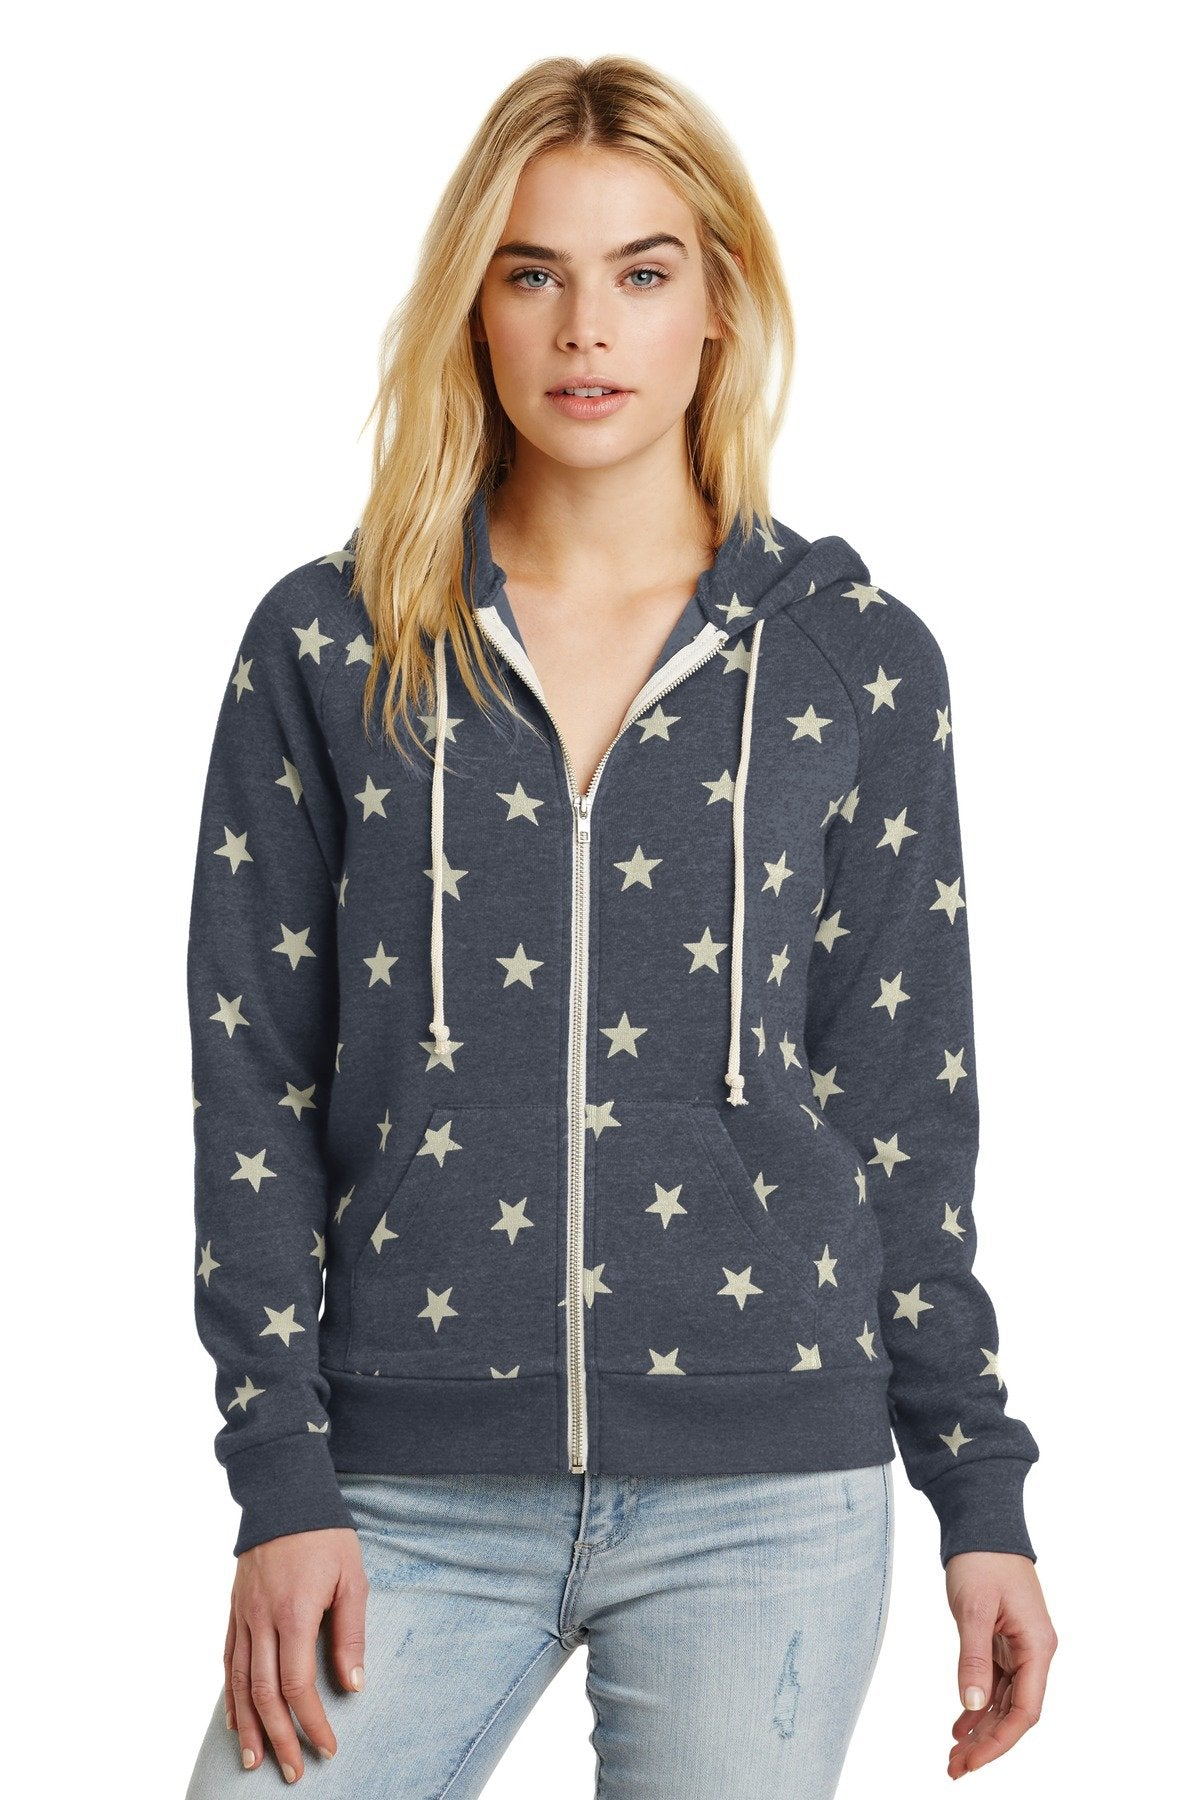 Stars - Alternative Apparel AA9573